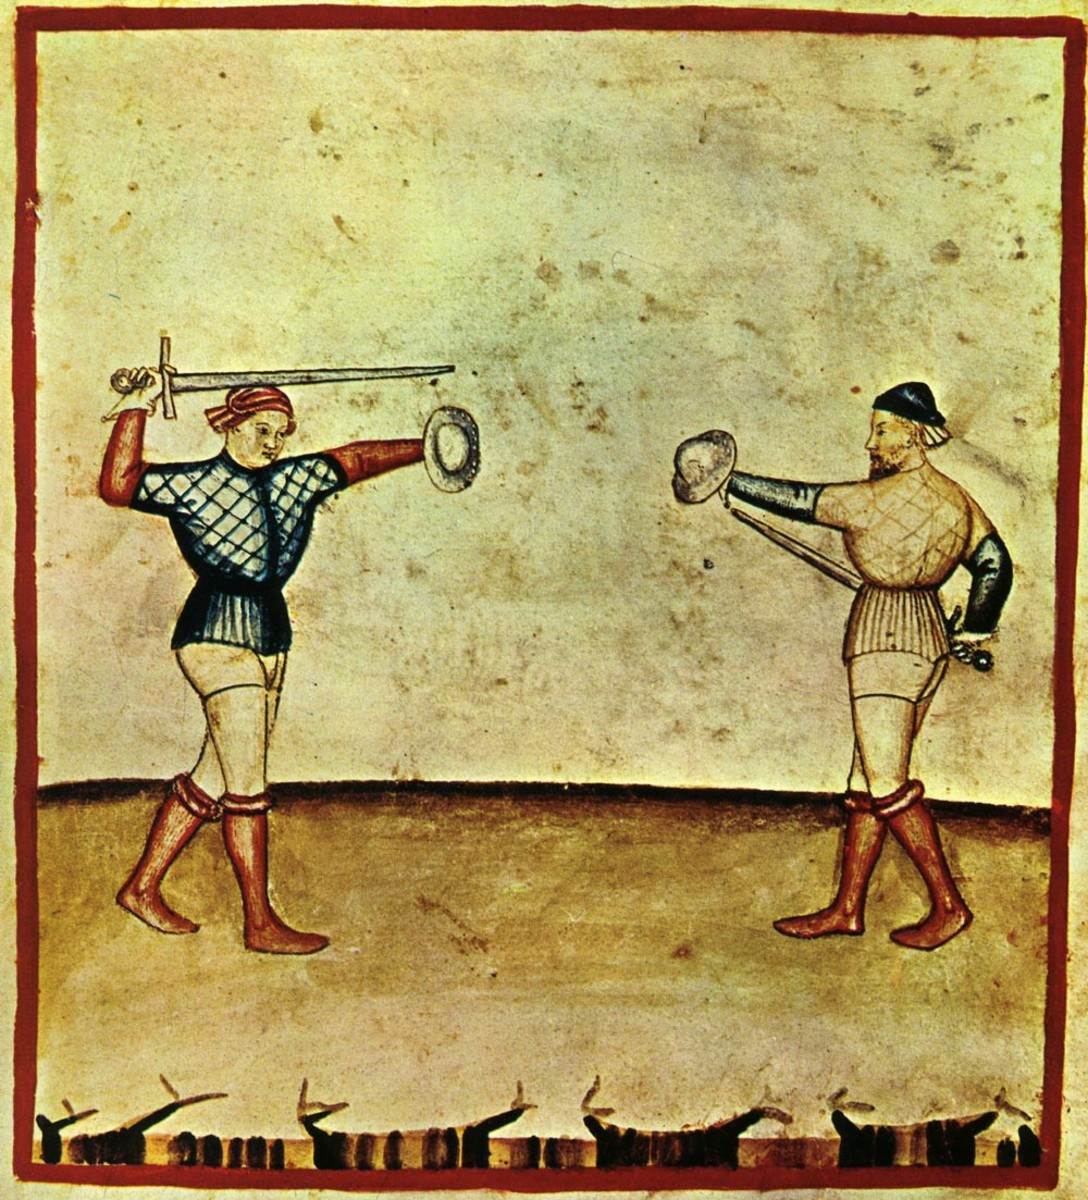 An illustration of a sword and buckler from a 14th century Italian manuscript.